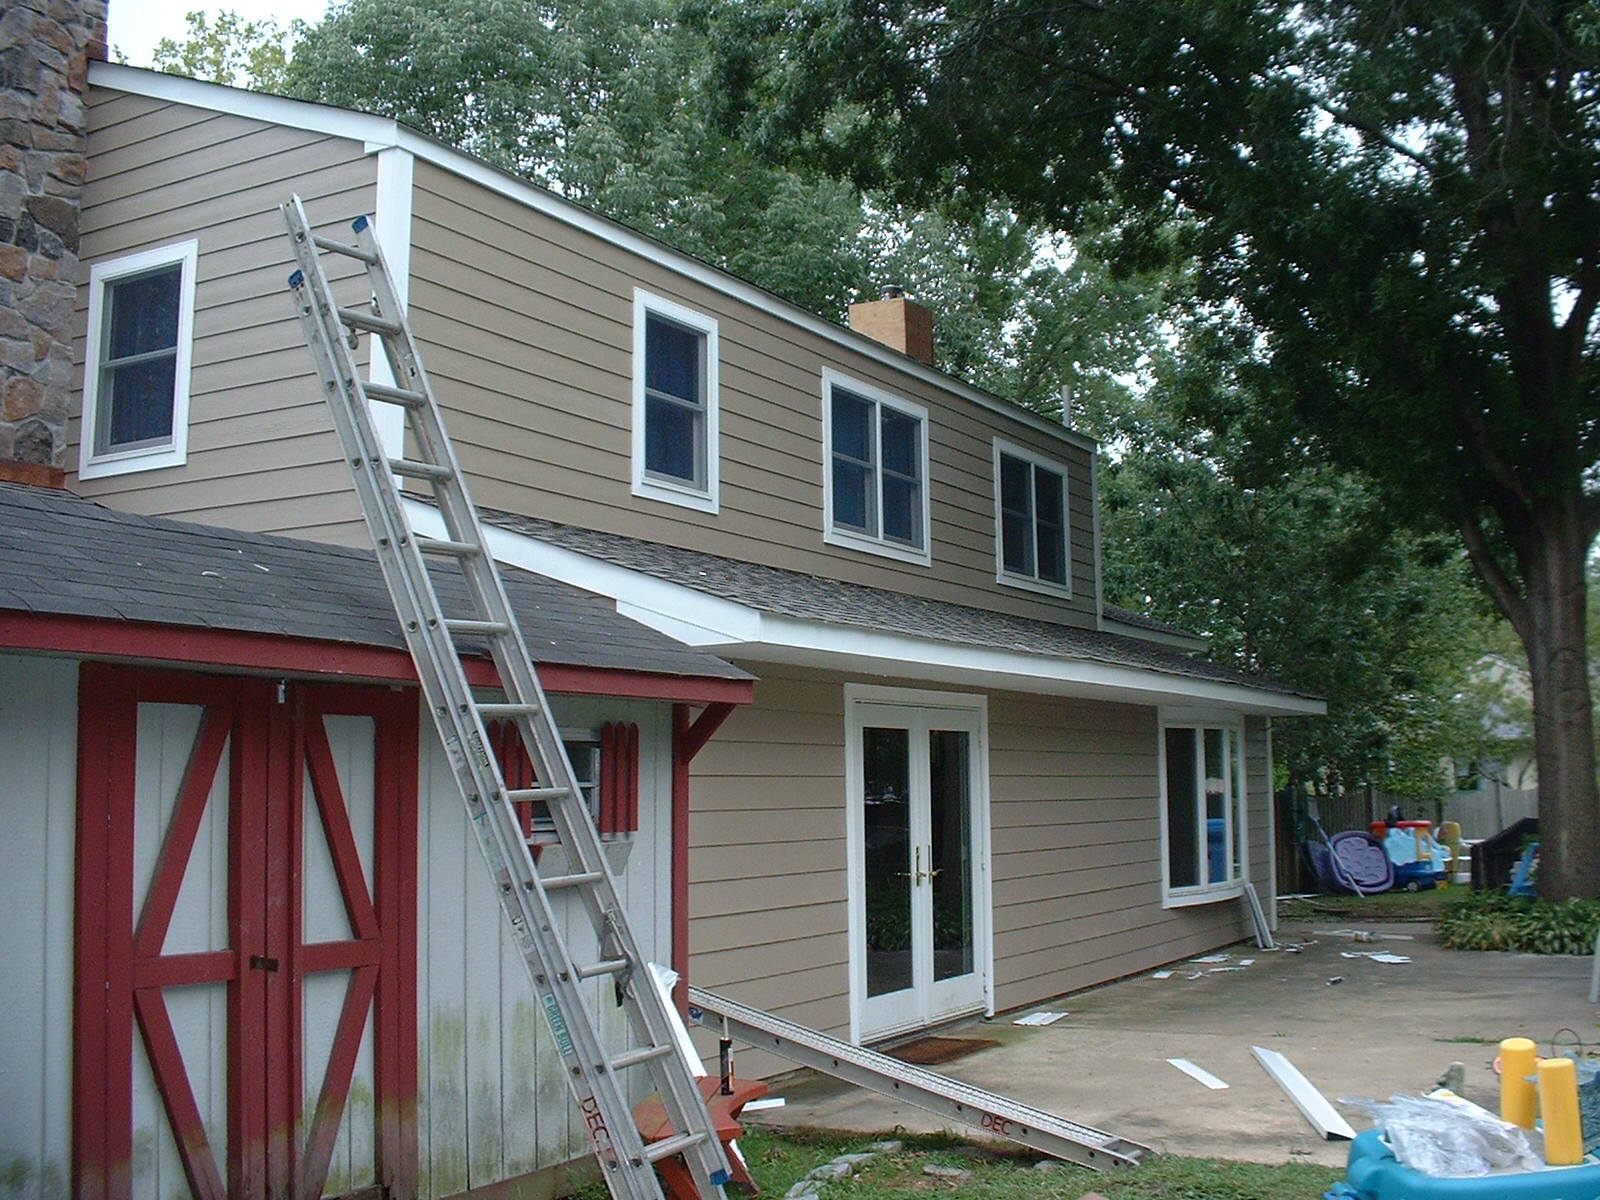 The siding on the rear of the house is just about finished.